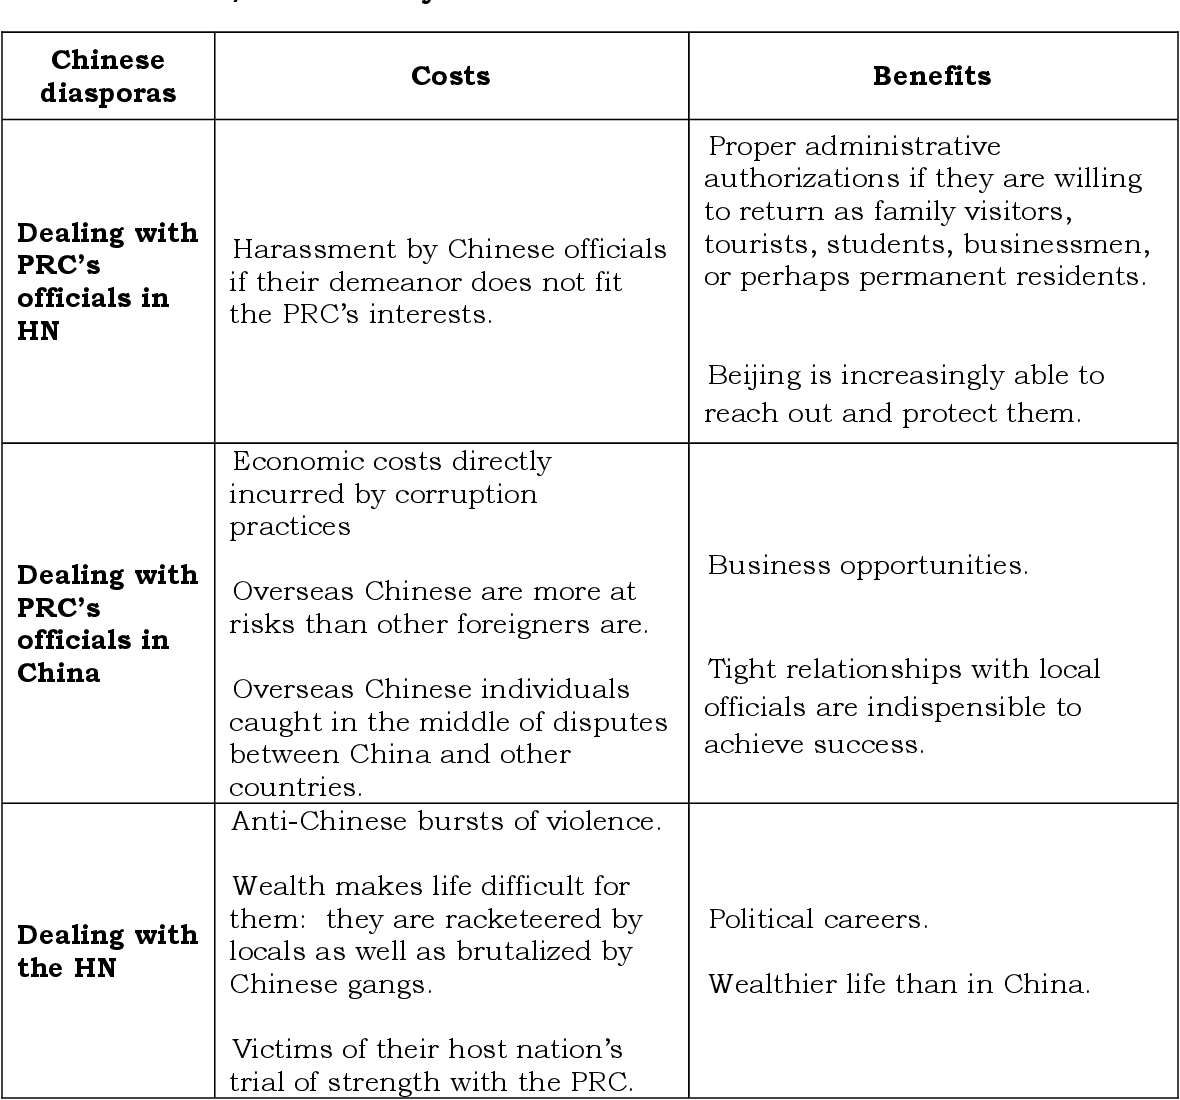 Table 3 from The Chinese Diaspora: China's Instrument of